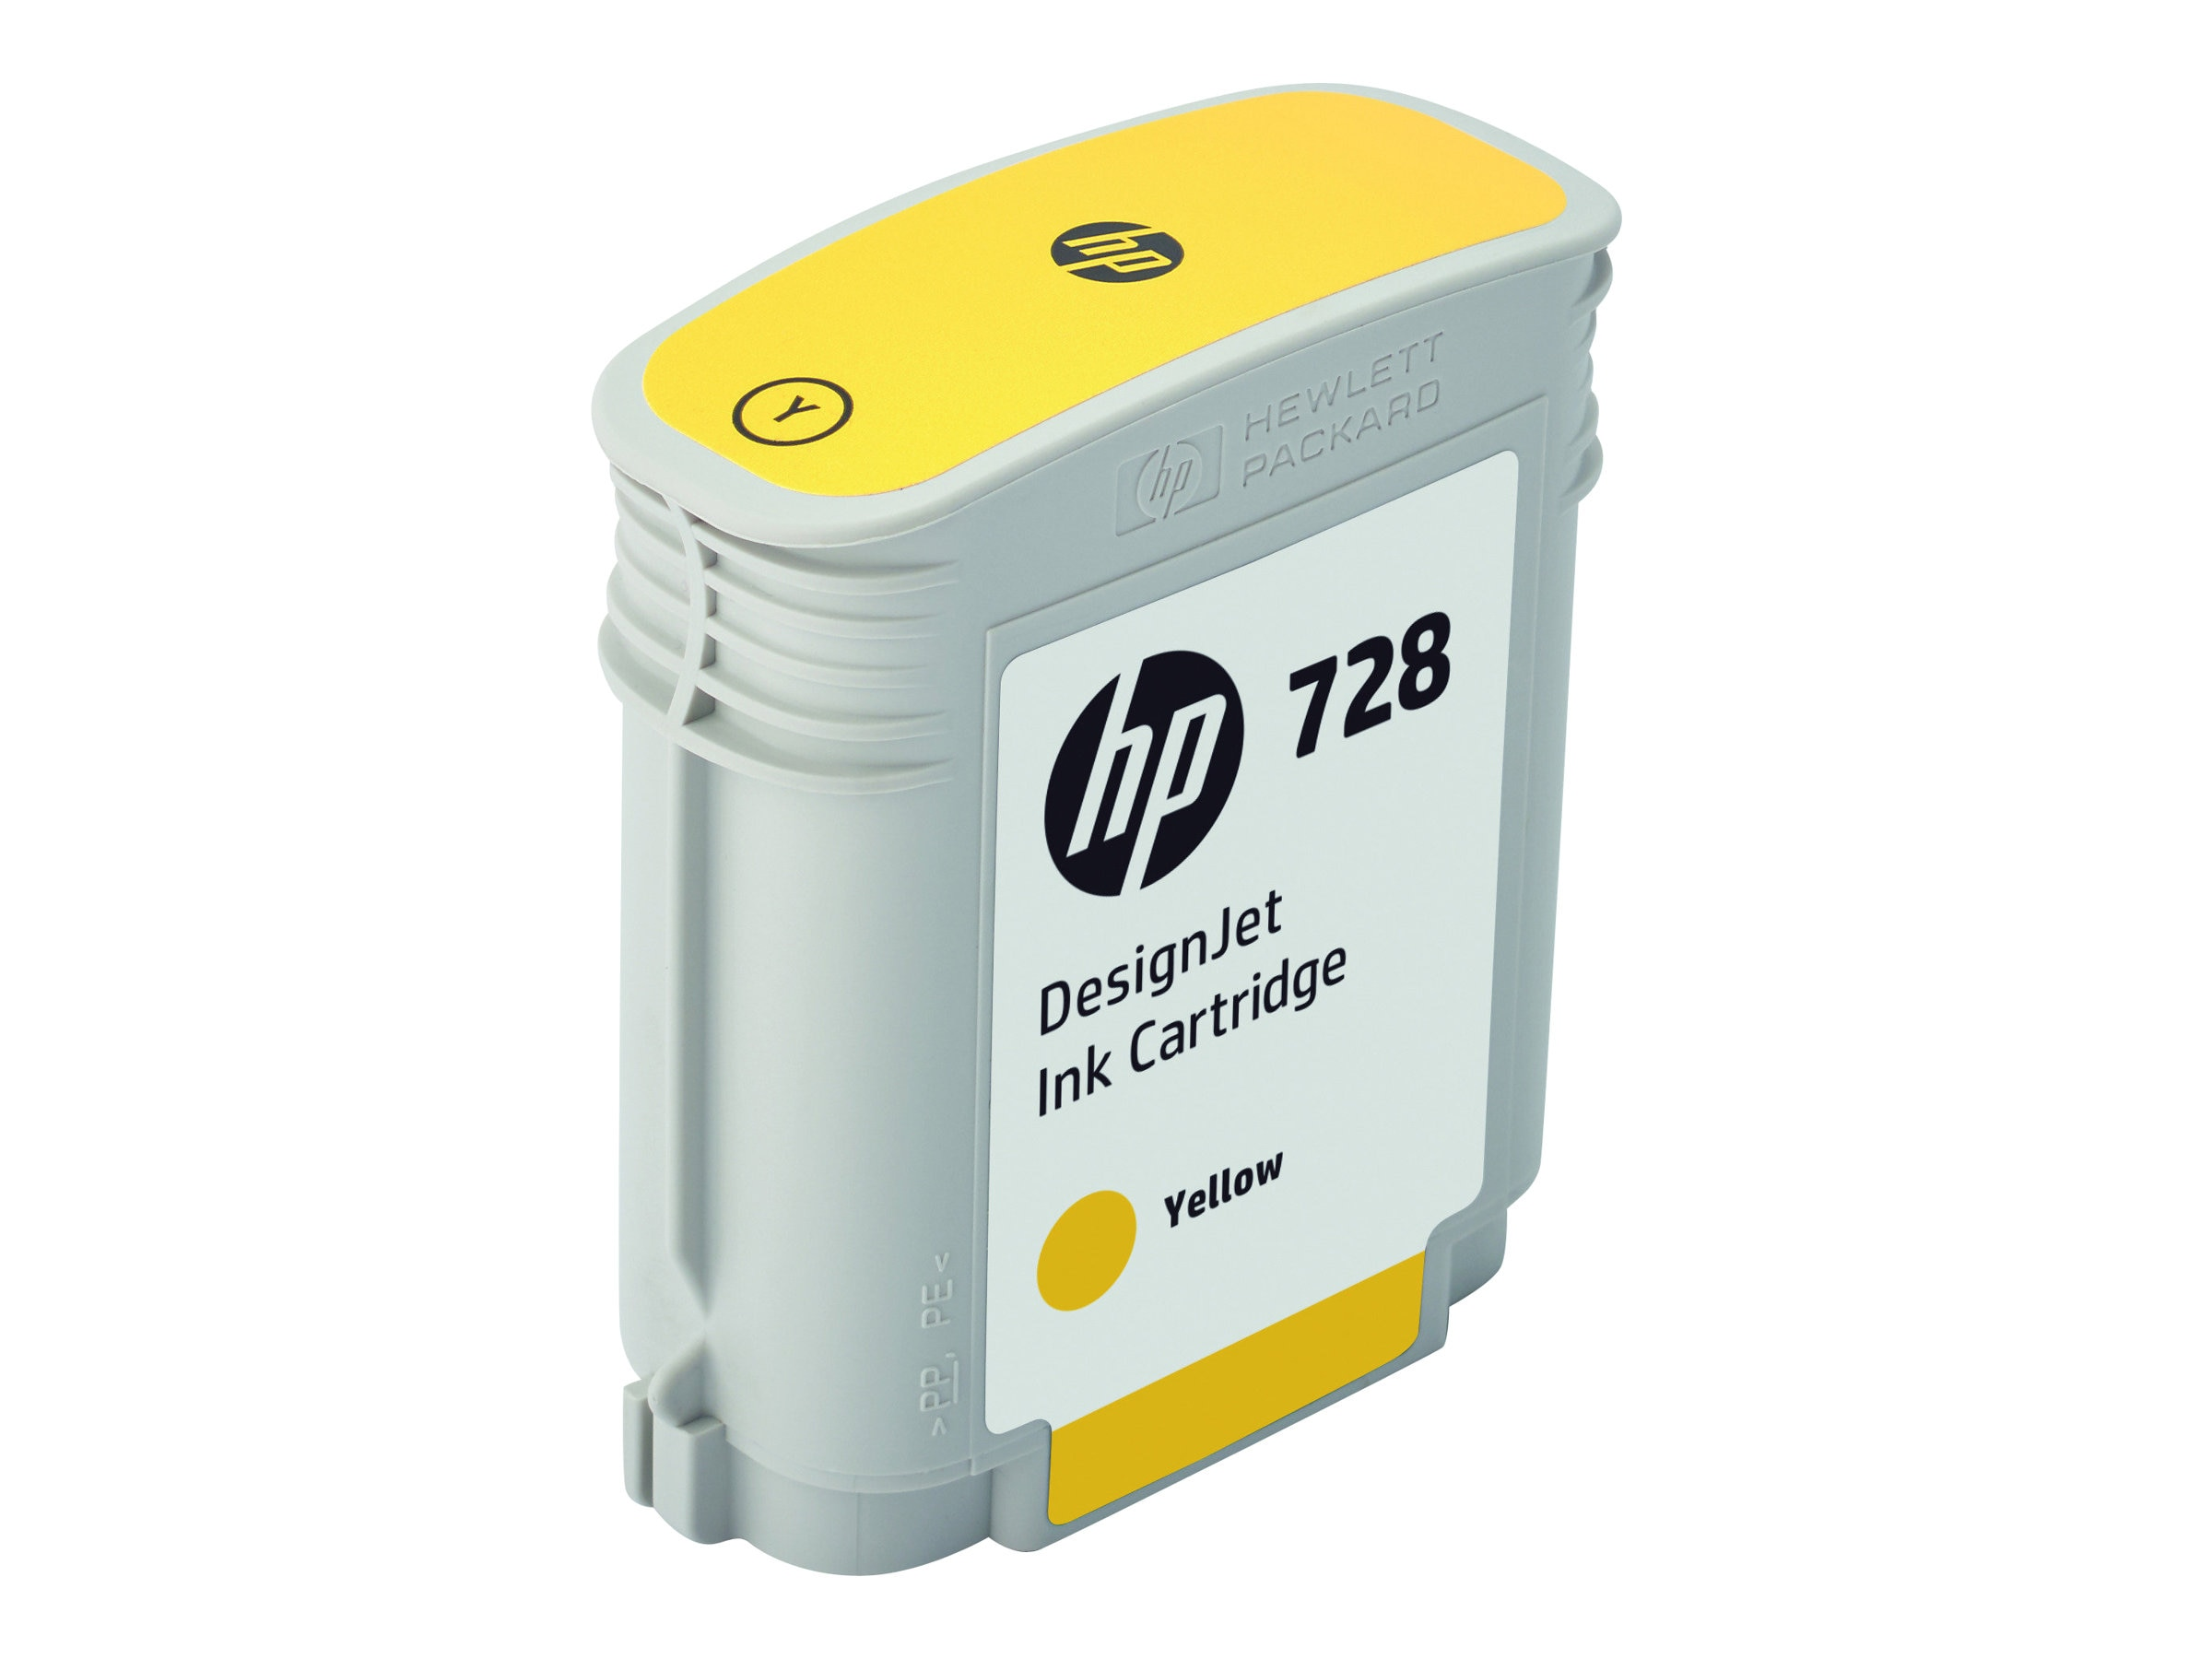 HP Inc. F9J61A Image 1